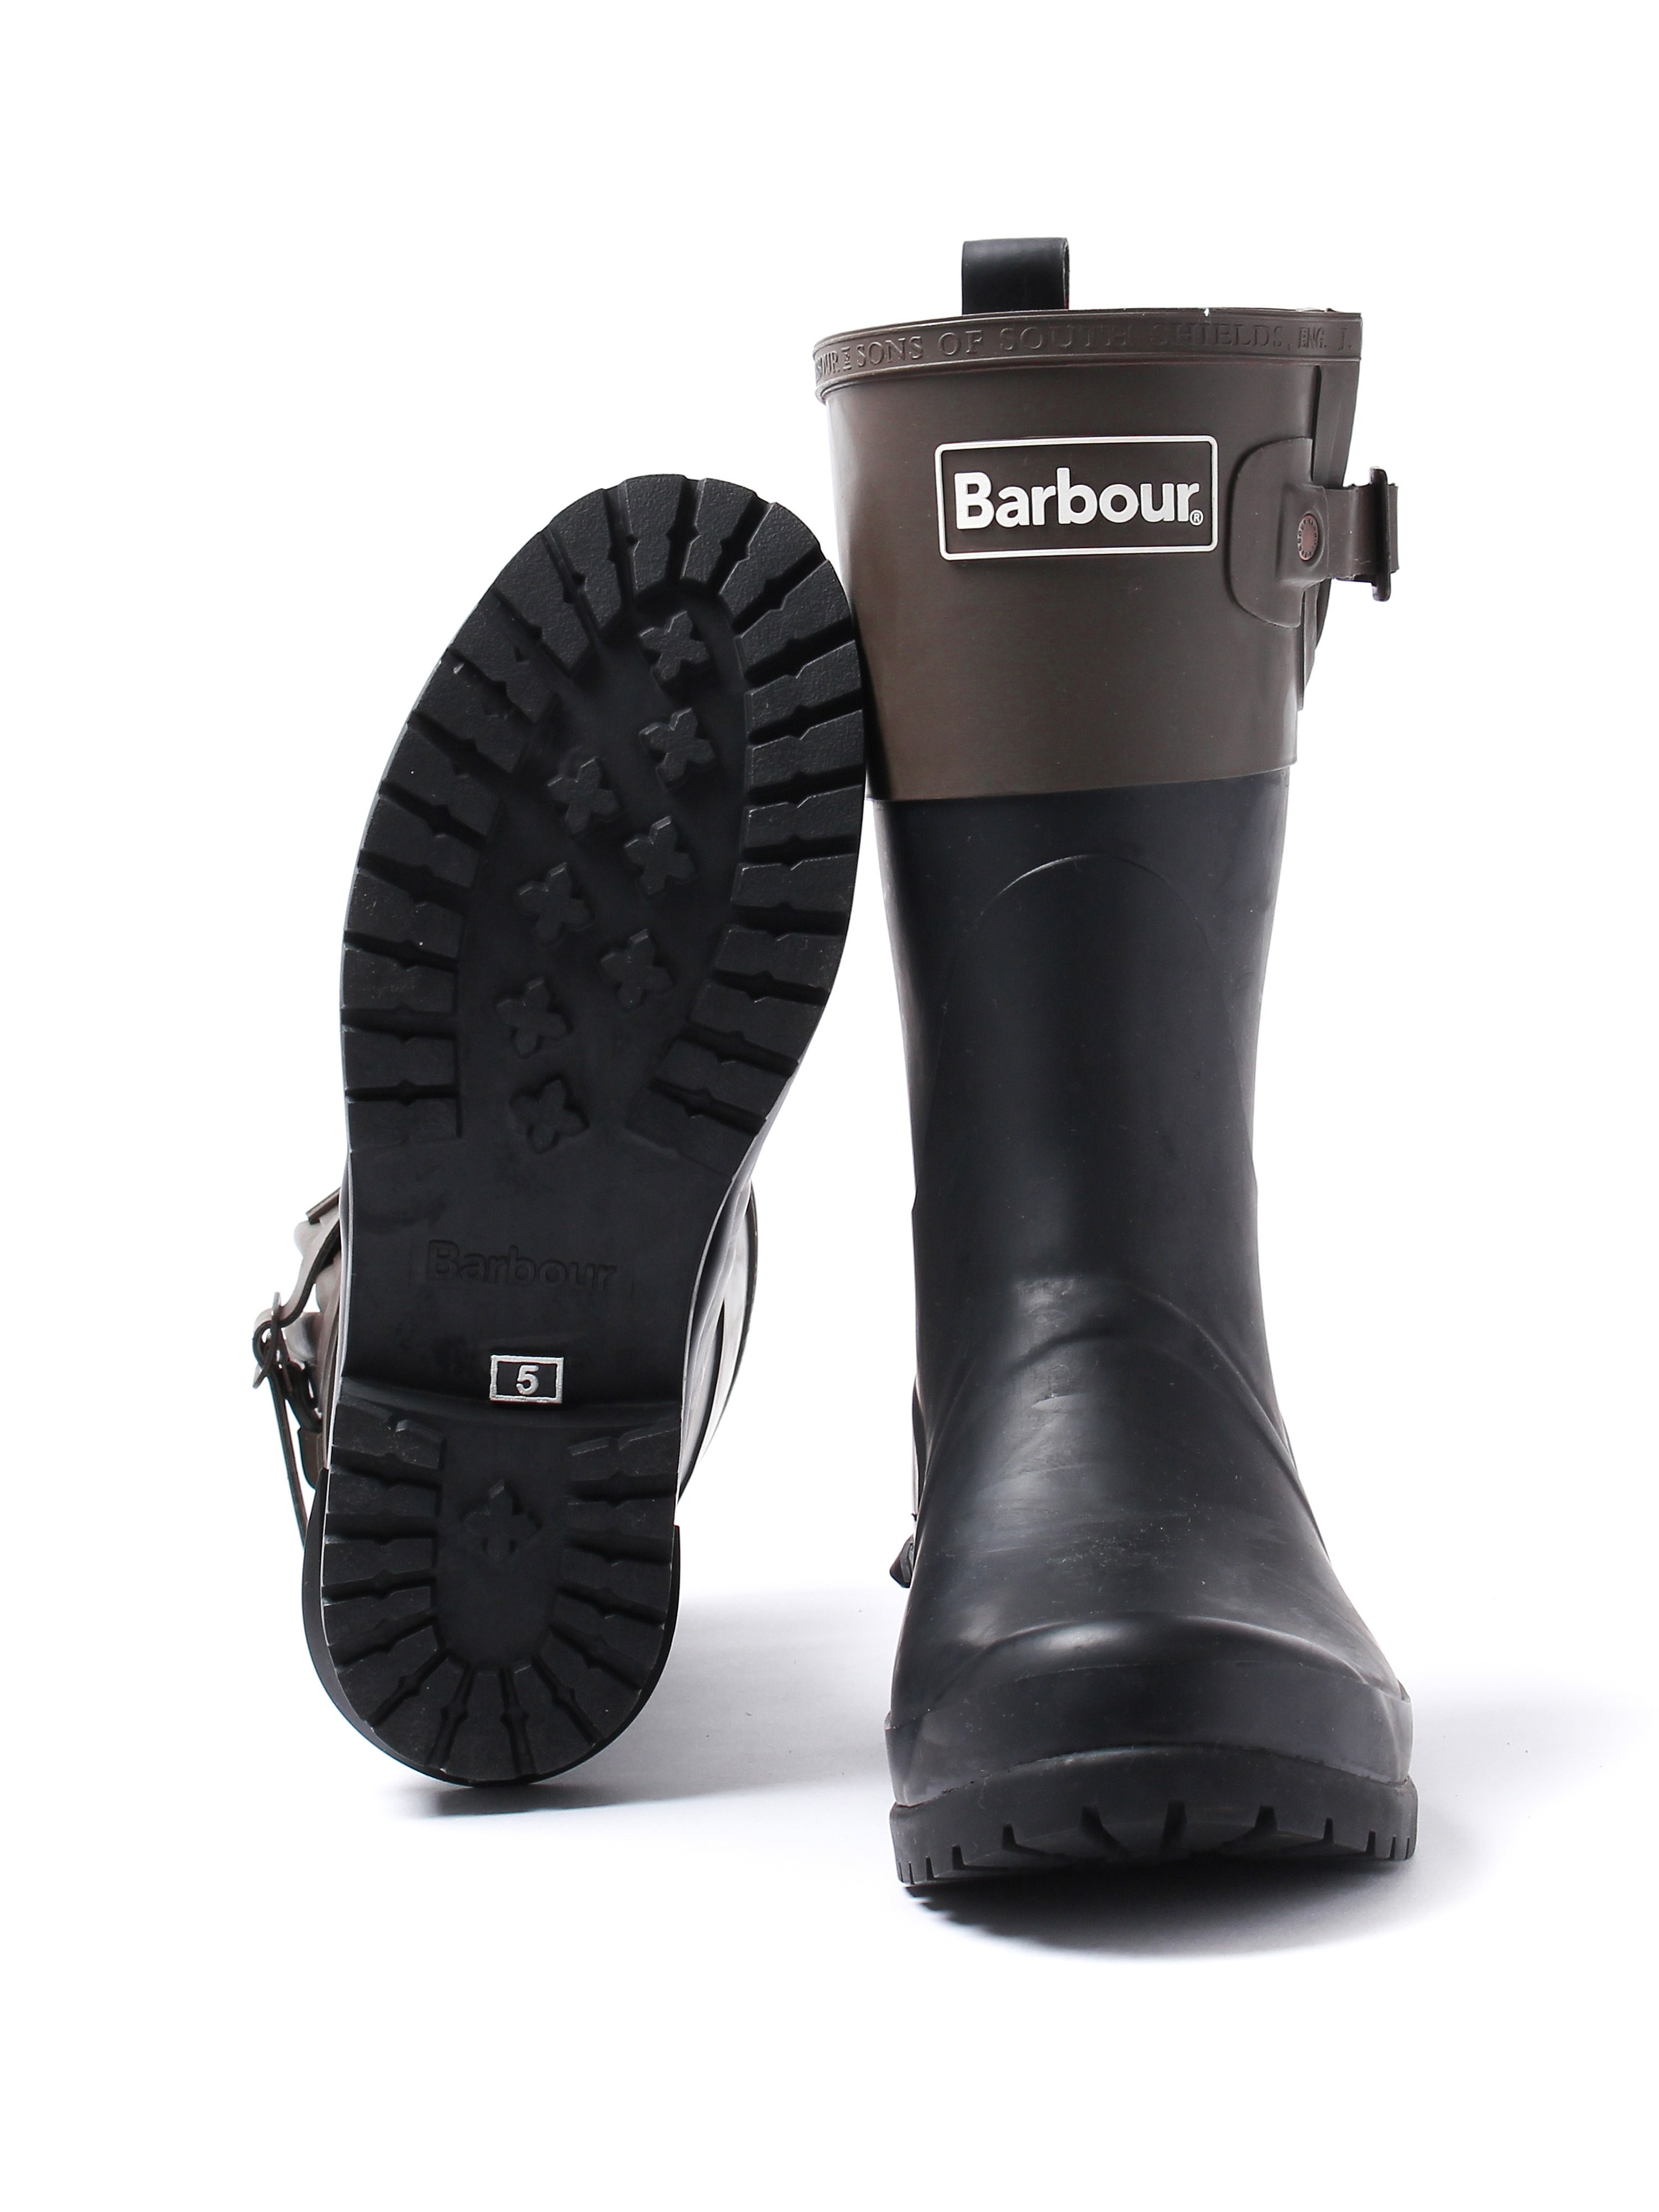 Barbour Women's Short Colour Block Rubber Wellington Boots - Black & Olive